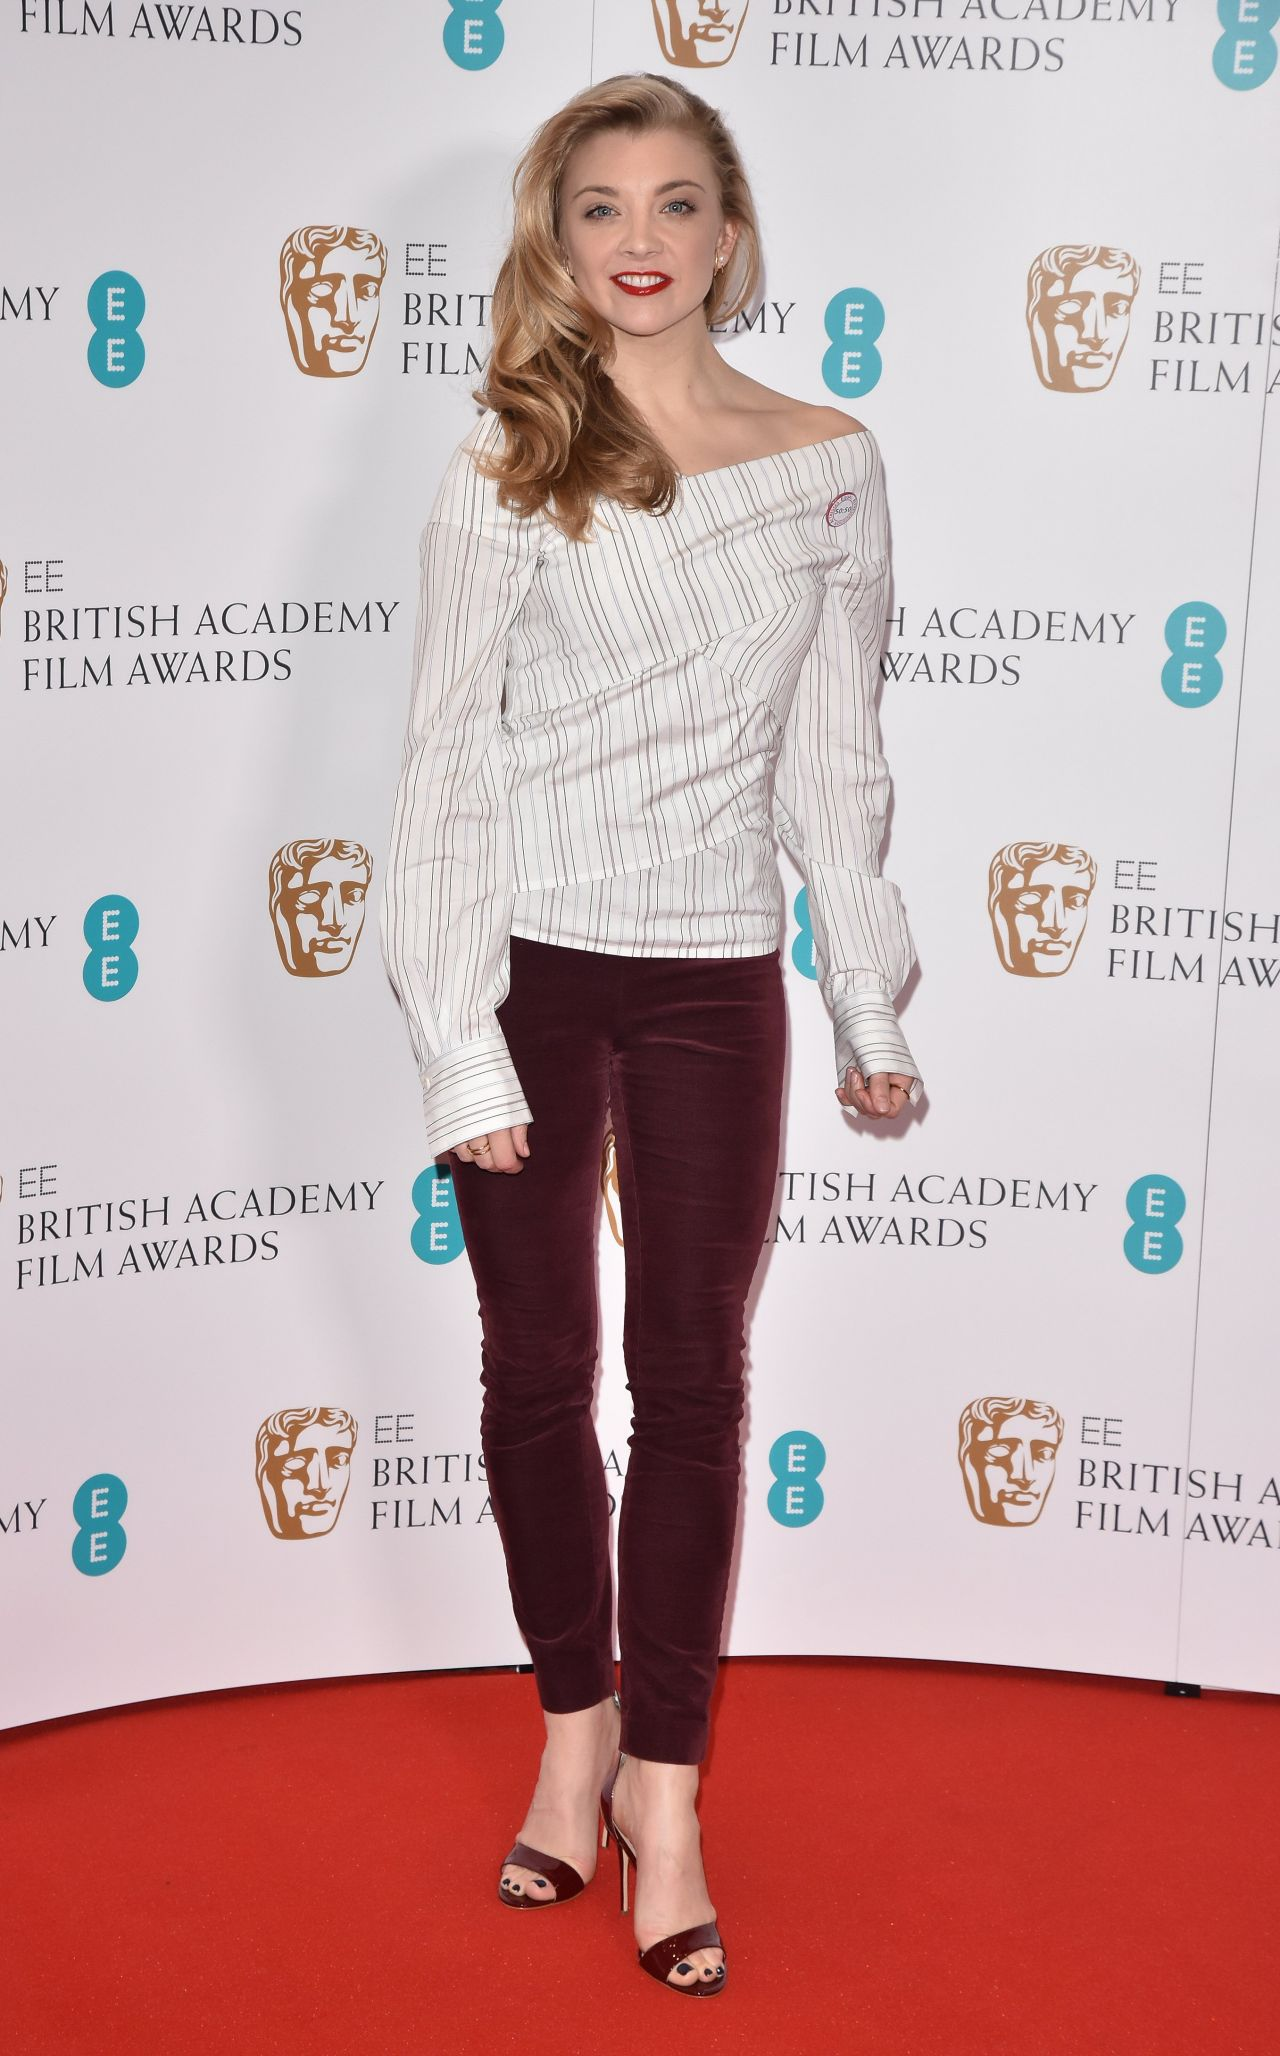 http://celebmafia.com/wp-content/uploads/2018/01/natalie-dormer-ee-british-academy-film-awards-nominations-announcement-in-london-4.jpg